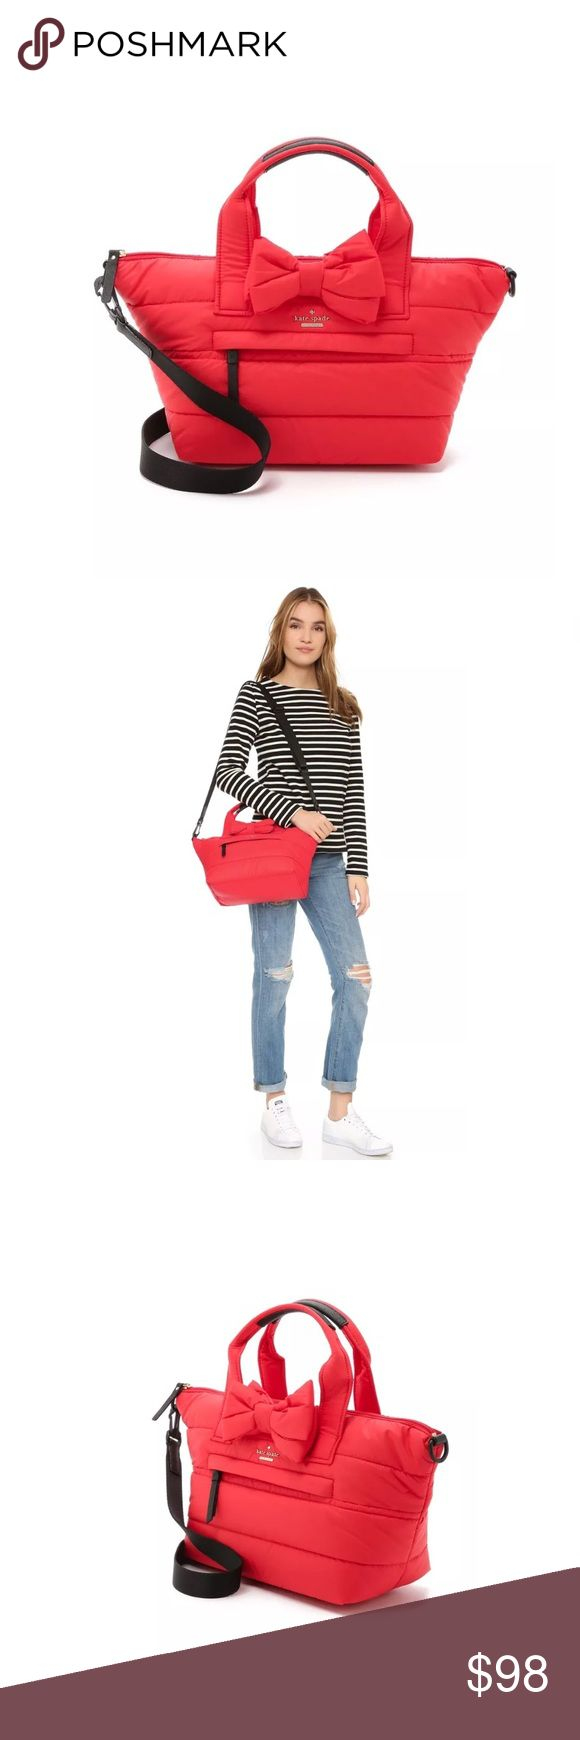 """KATE SPADE Colby Court Quilted Bow Crossbody Bag Small tote 100% polyester Double flat top handles Bow accent at front Exterior zip pocket at front Fabric interior lining with two flat pockets & one zipper pocket Zip top closure Measurements: Body length 11"""", height 9"""", width 6"""", drop handle 4"""", strap drop 13"""" Material: Shell and lining: 100% polyester; Trim: polyurethane This item is still wrapped in tissue paper&plastic from the company. I would prefer not to unwrap it & expose it to…"""